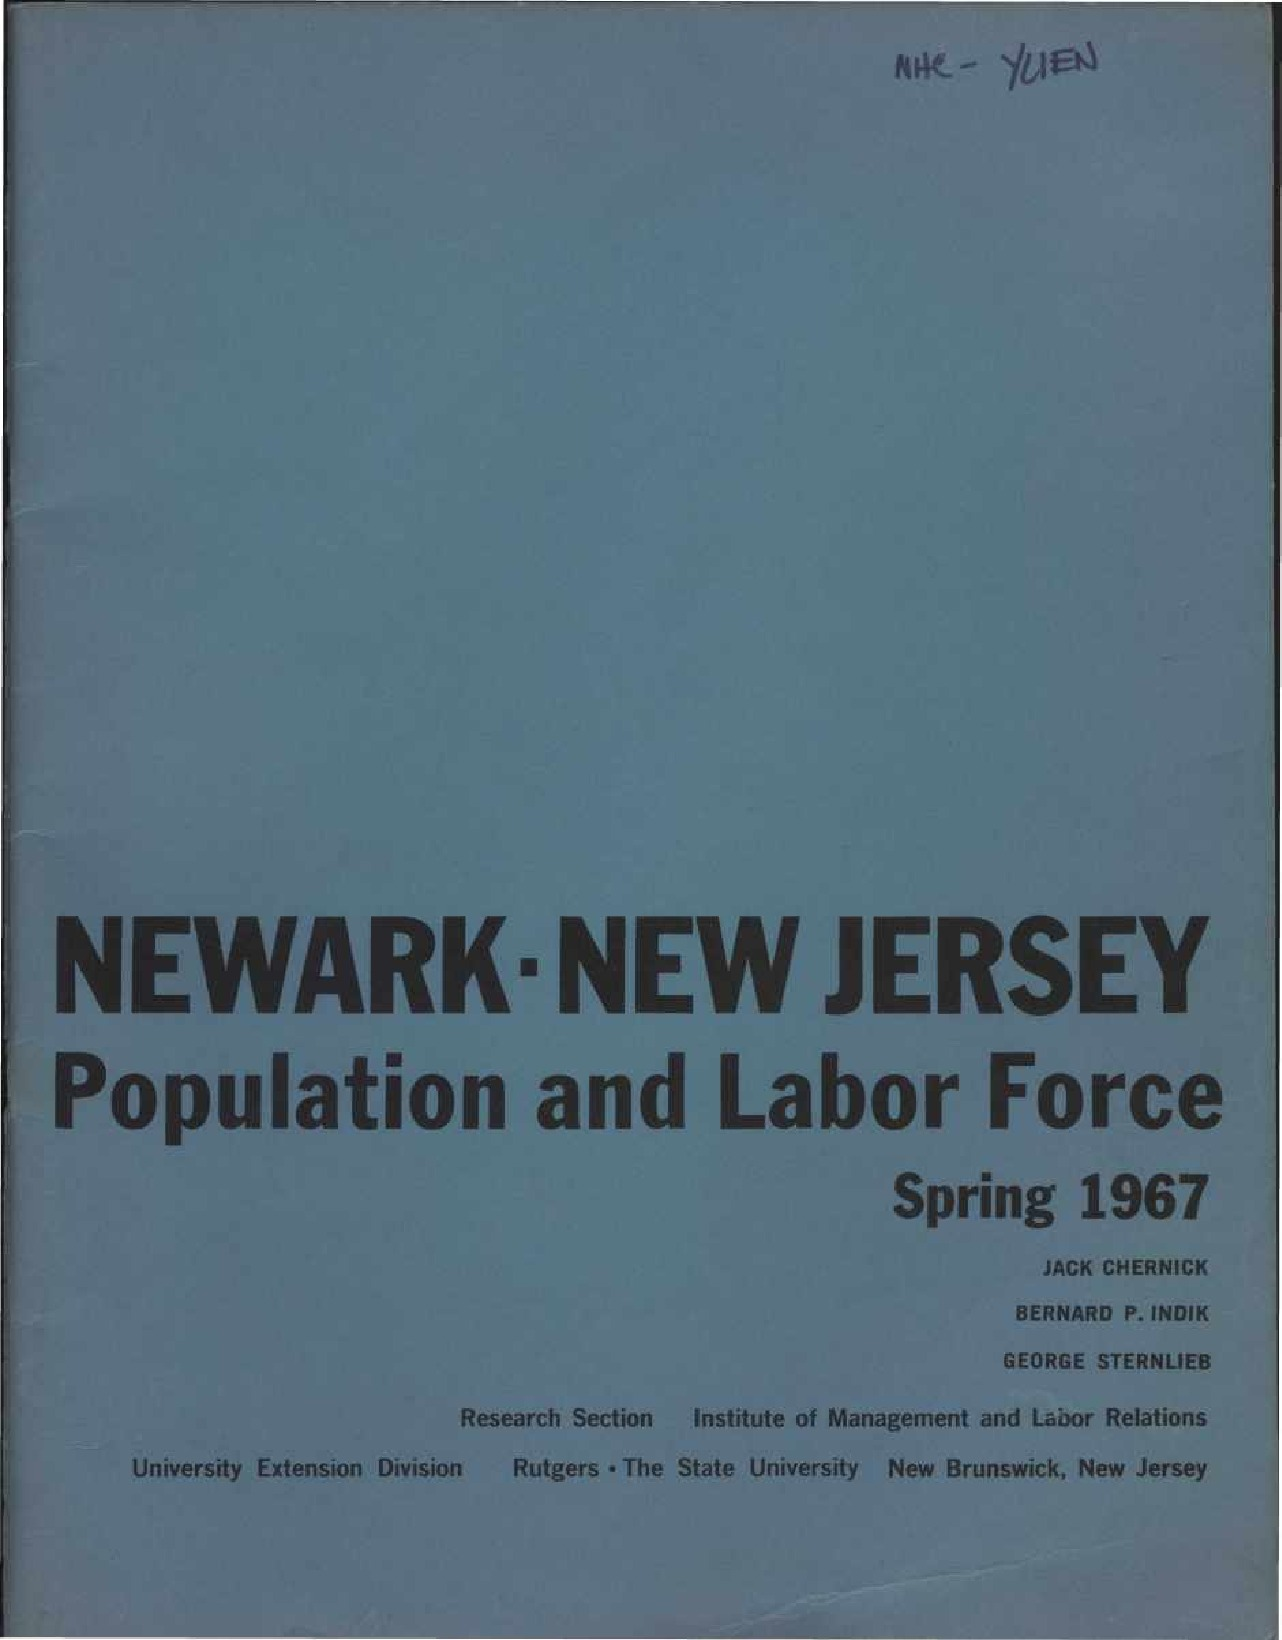 Newark Population and Labor Force (1967)